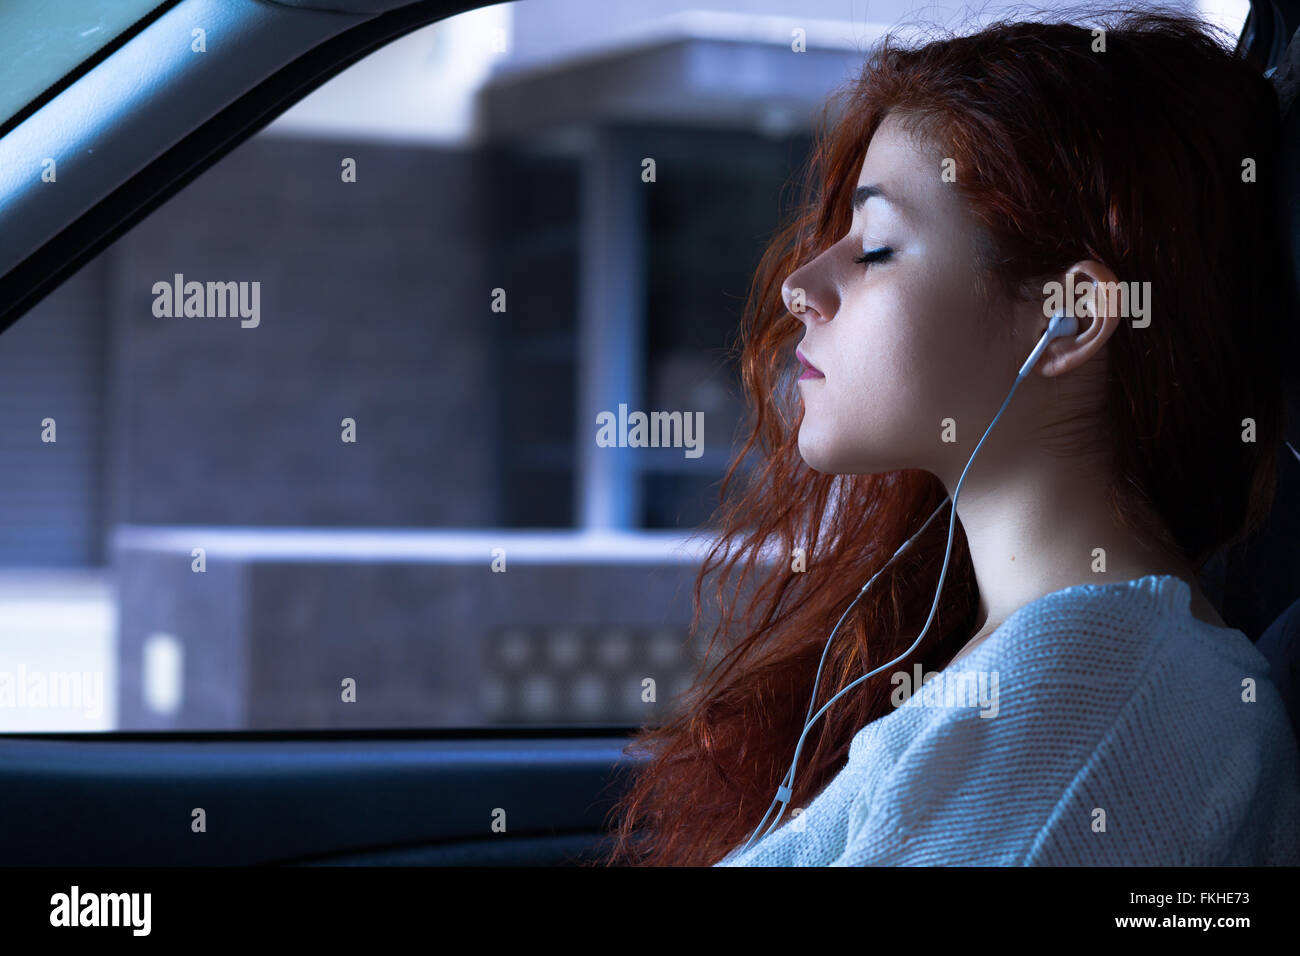 Woman with Earbuds Listening to Music in a Car - Stock Image